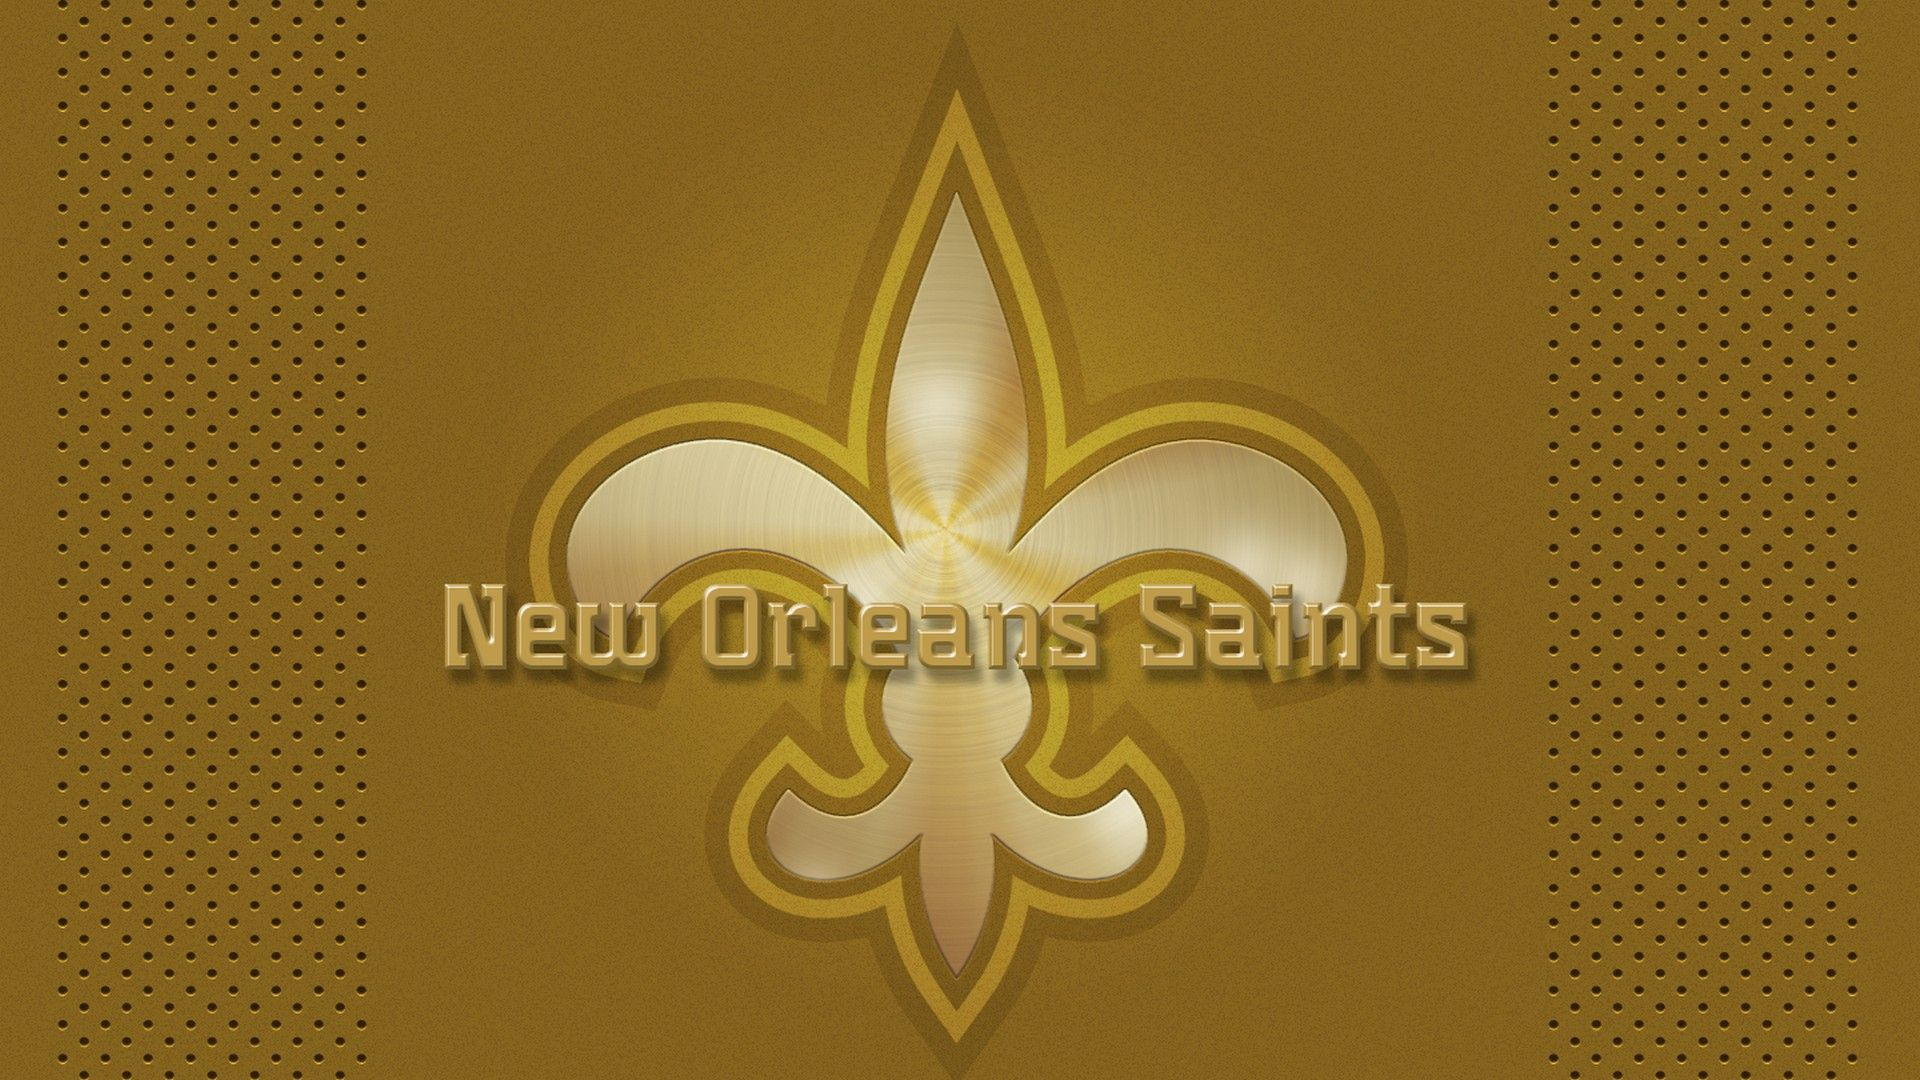 New Orleans Saints Wallpaper For Mac Backgrounds New Orleans